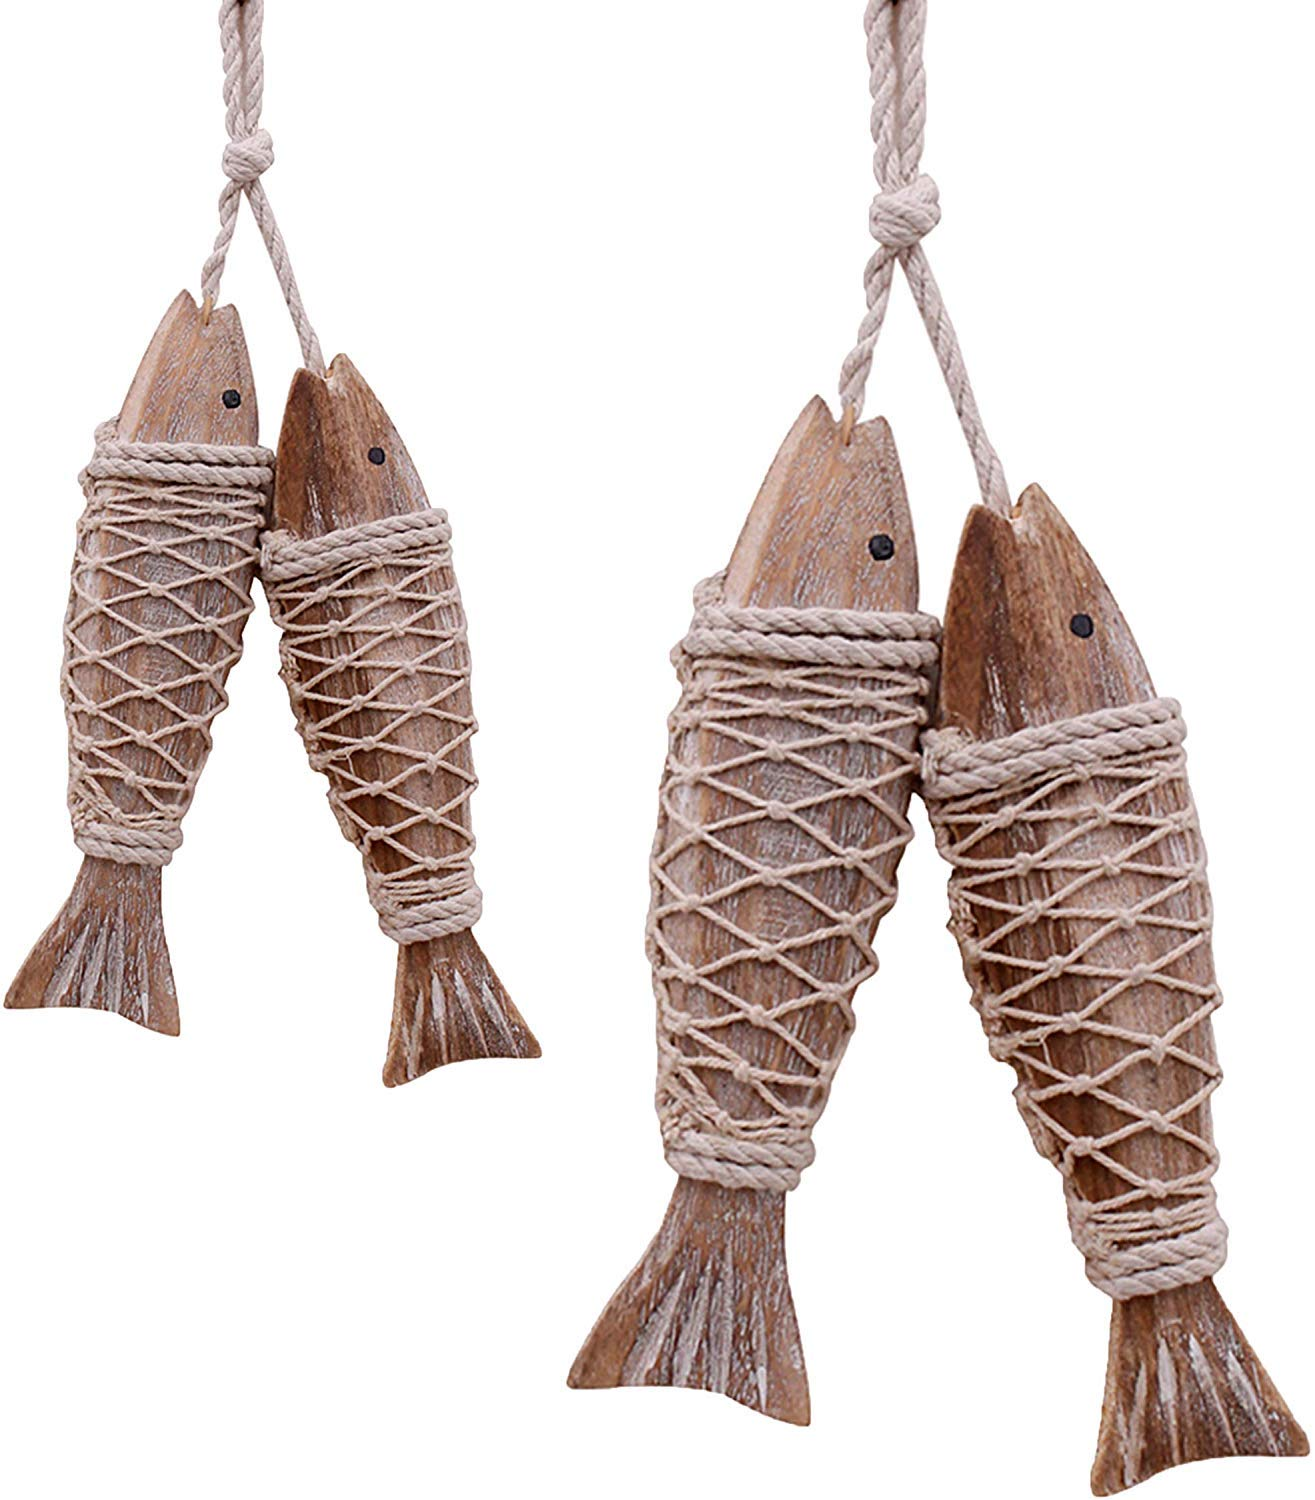 Set of 4 Hanging Vintage Carved Wooden Fish with Fishing Net Decor Hand Carved Nautical Decorated Wood Decor Distressed Wall Art Wood Fish Ornament Nautical Beach Lakehouse Themed Wall Decoration